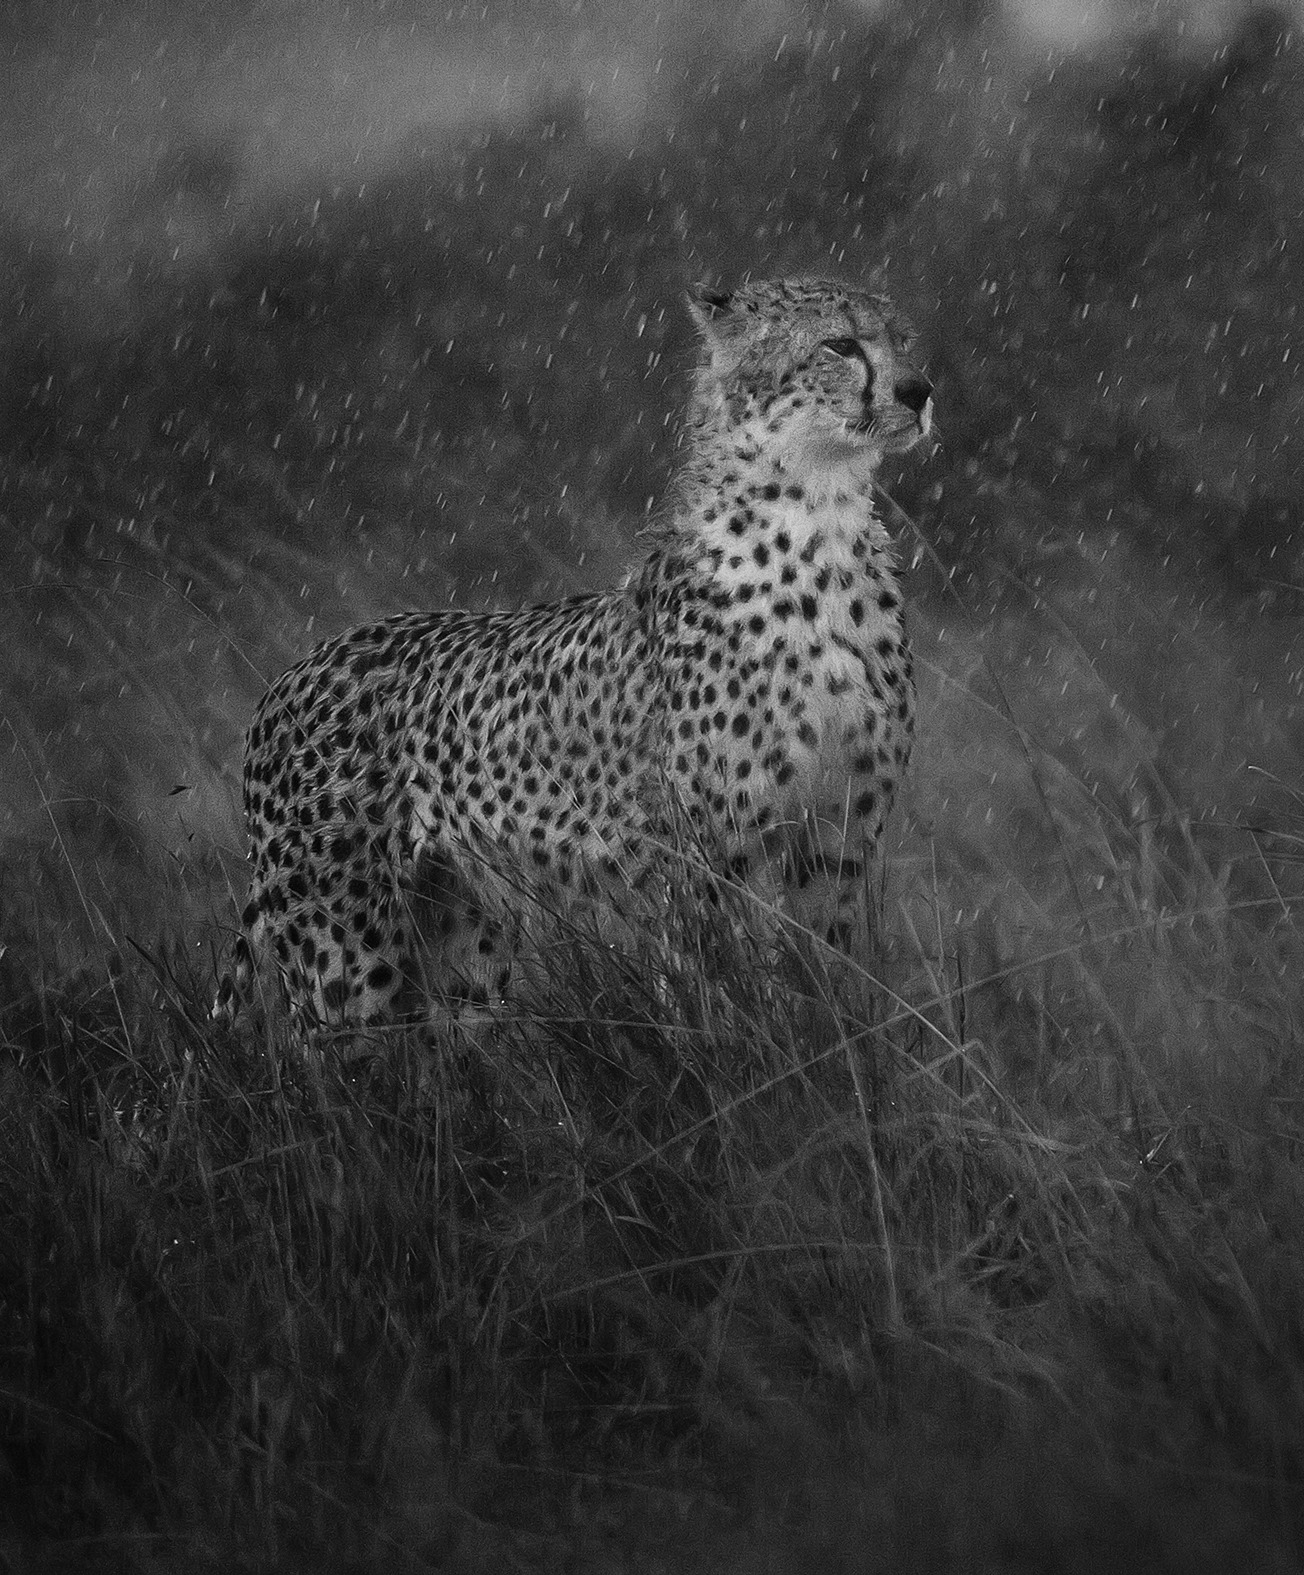 Malaika the Cheetah on a rainy day captured by ClementWild